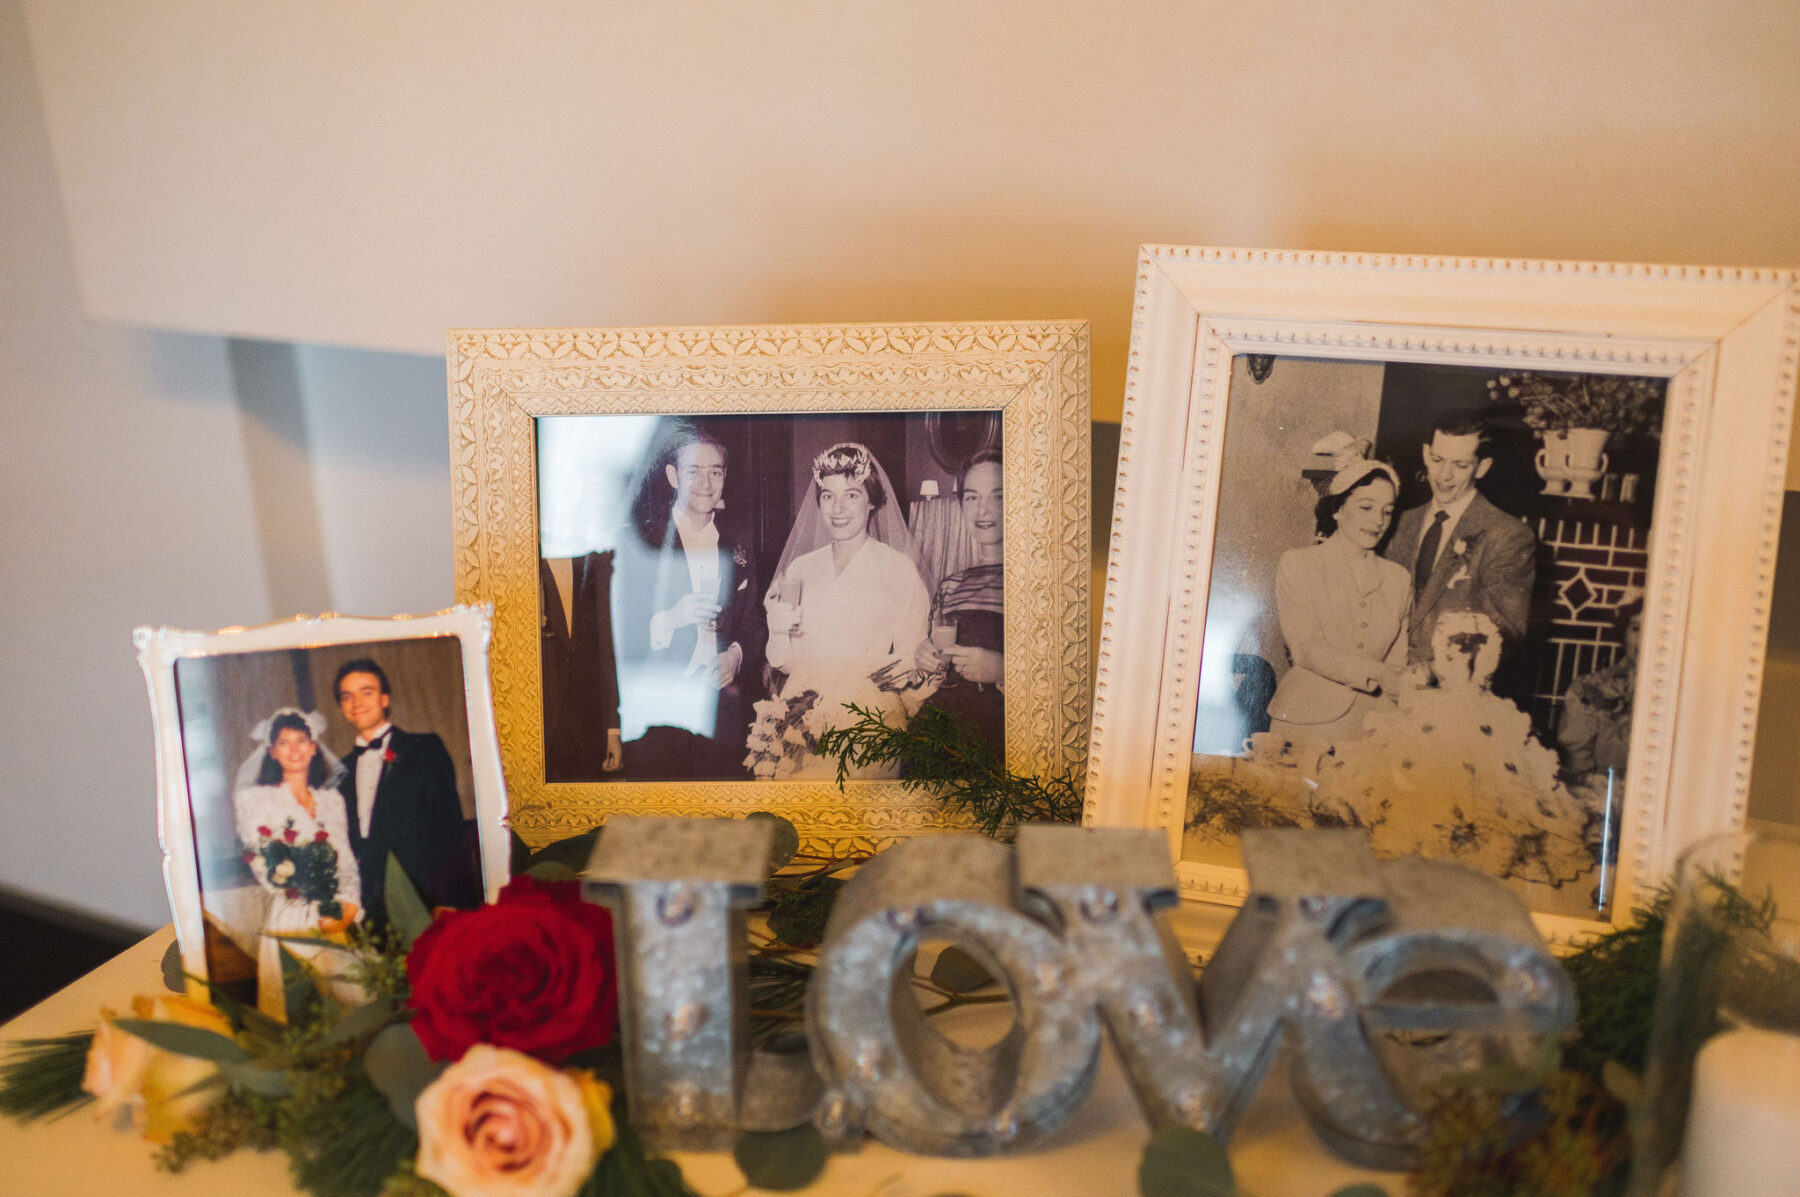 Generational wedding photos on display: Classic Winter Wedding by Details Nashville